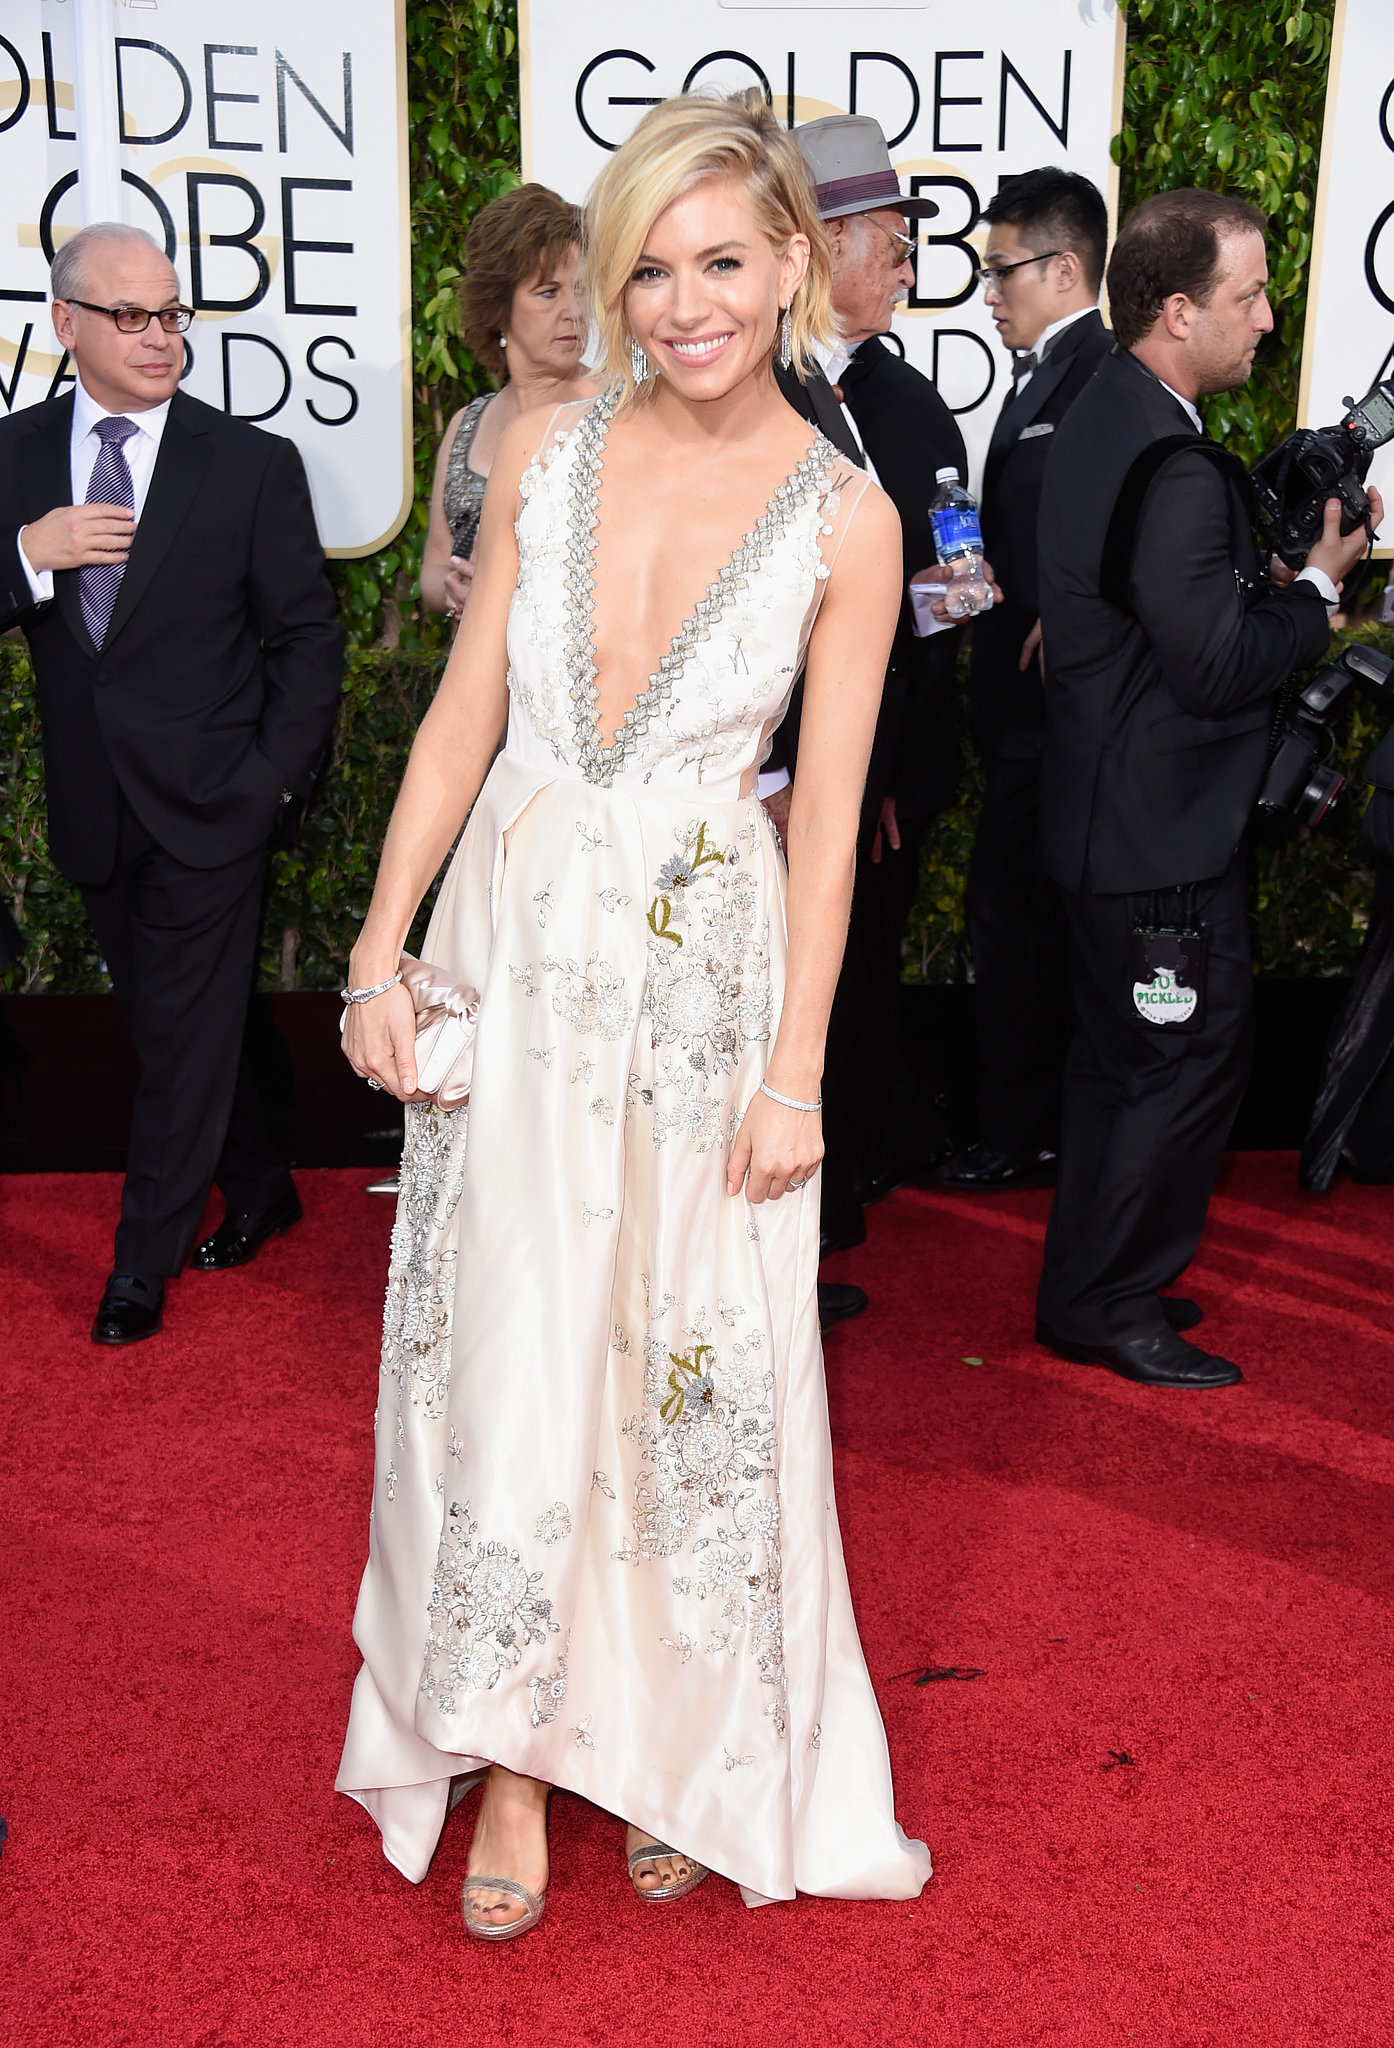 nezuki, golden globes, red carpet, american film, american movies, motion pictures, golden globe awards, golden globe fashion, red carpet 2015, jlo golden globe, emma stone golden globe, entourage, style, steal their look, stylish, classy, elegant, designer, blogger, fashion blogger, sydney blogger